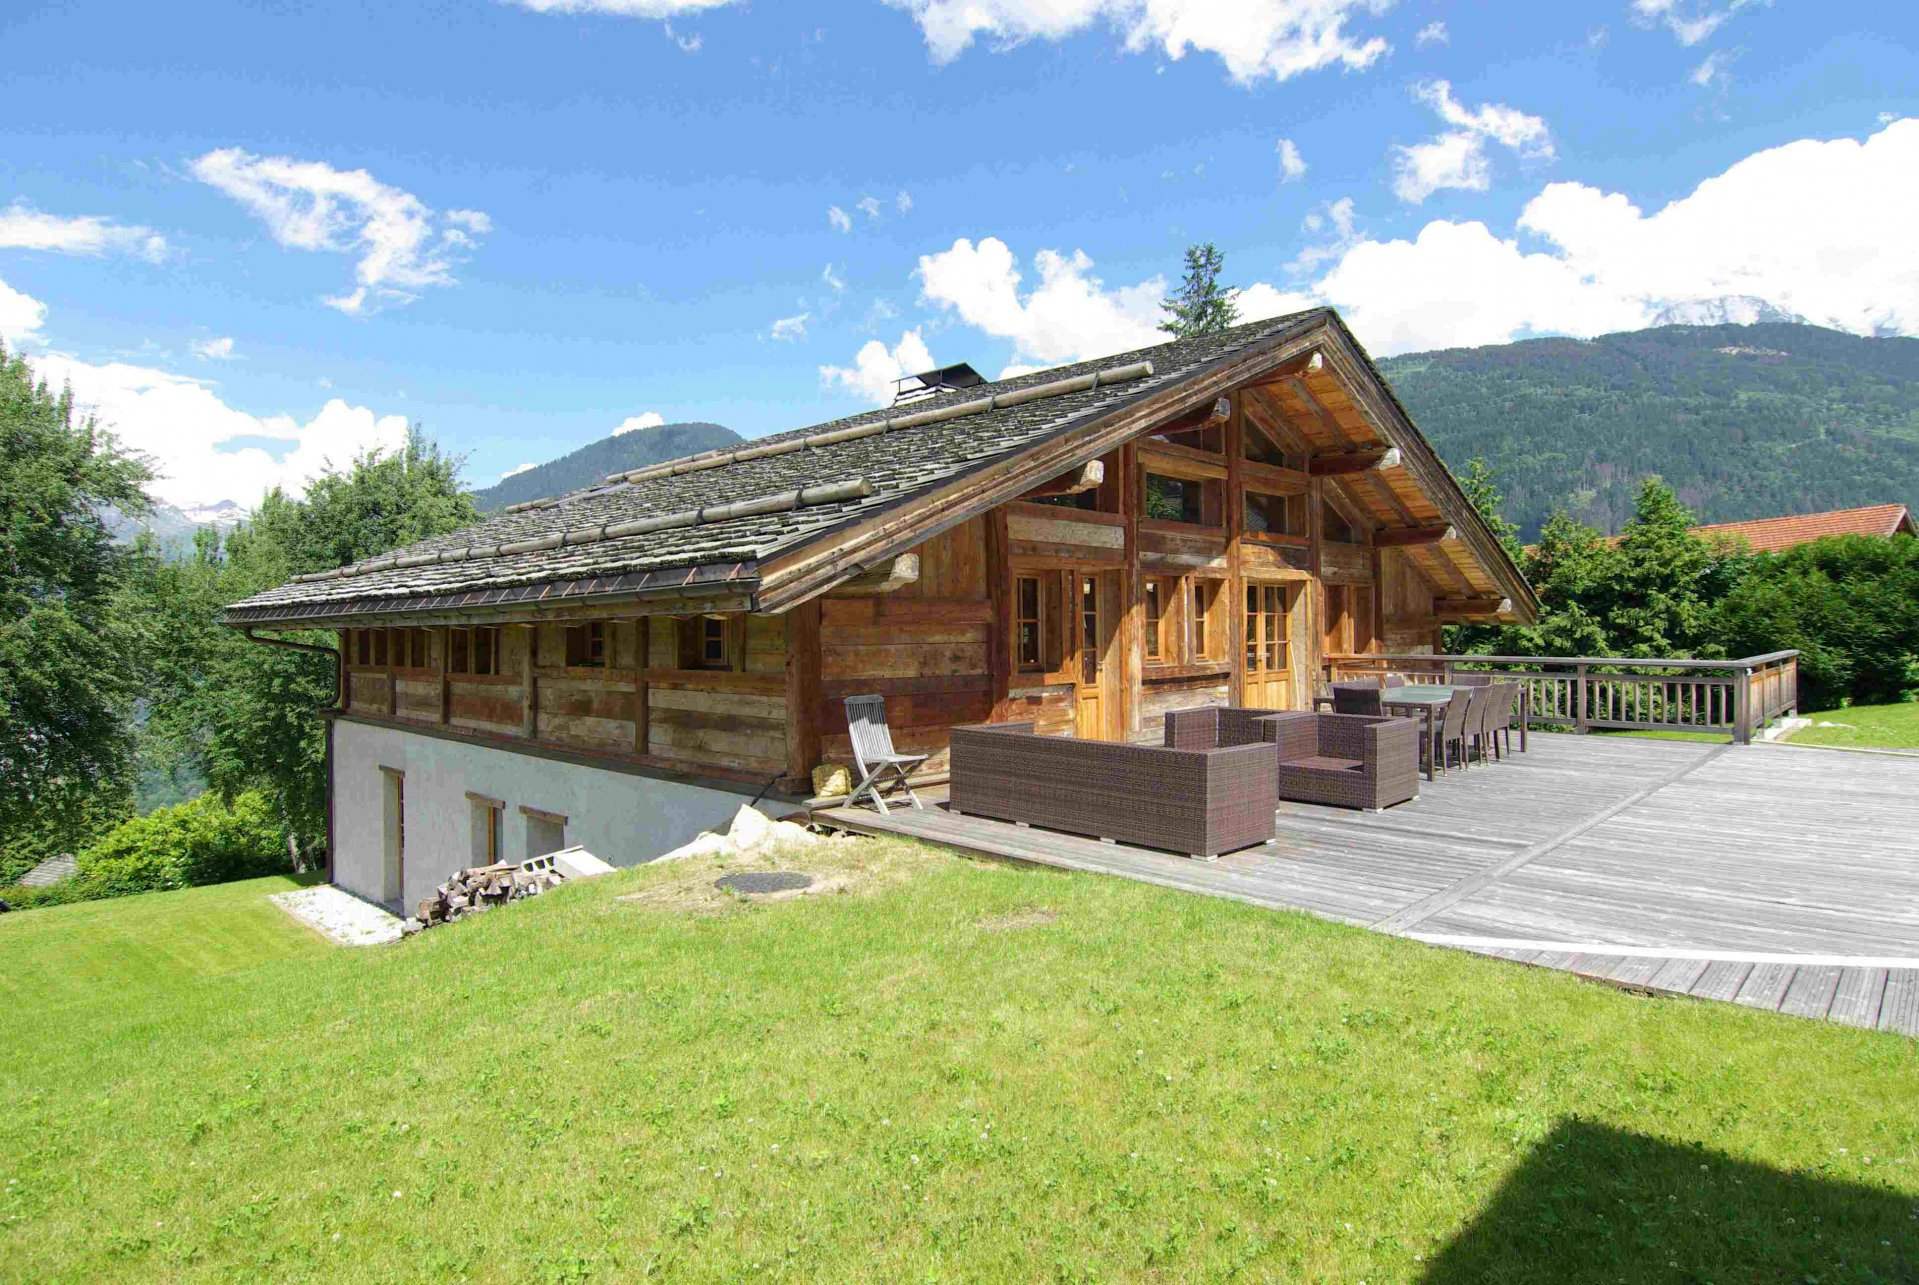 Farmhouse 5 en-suite bedrooms Saint-Gervais Mont-Blanc